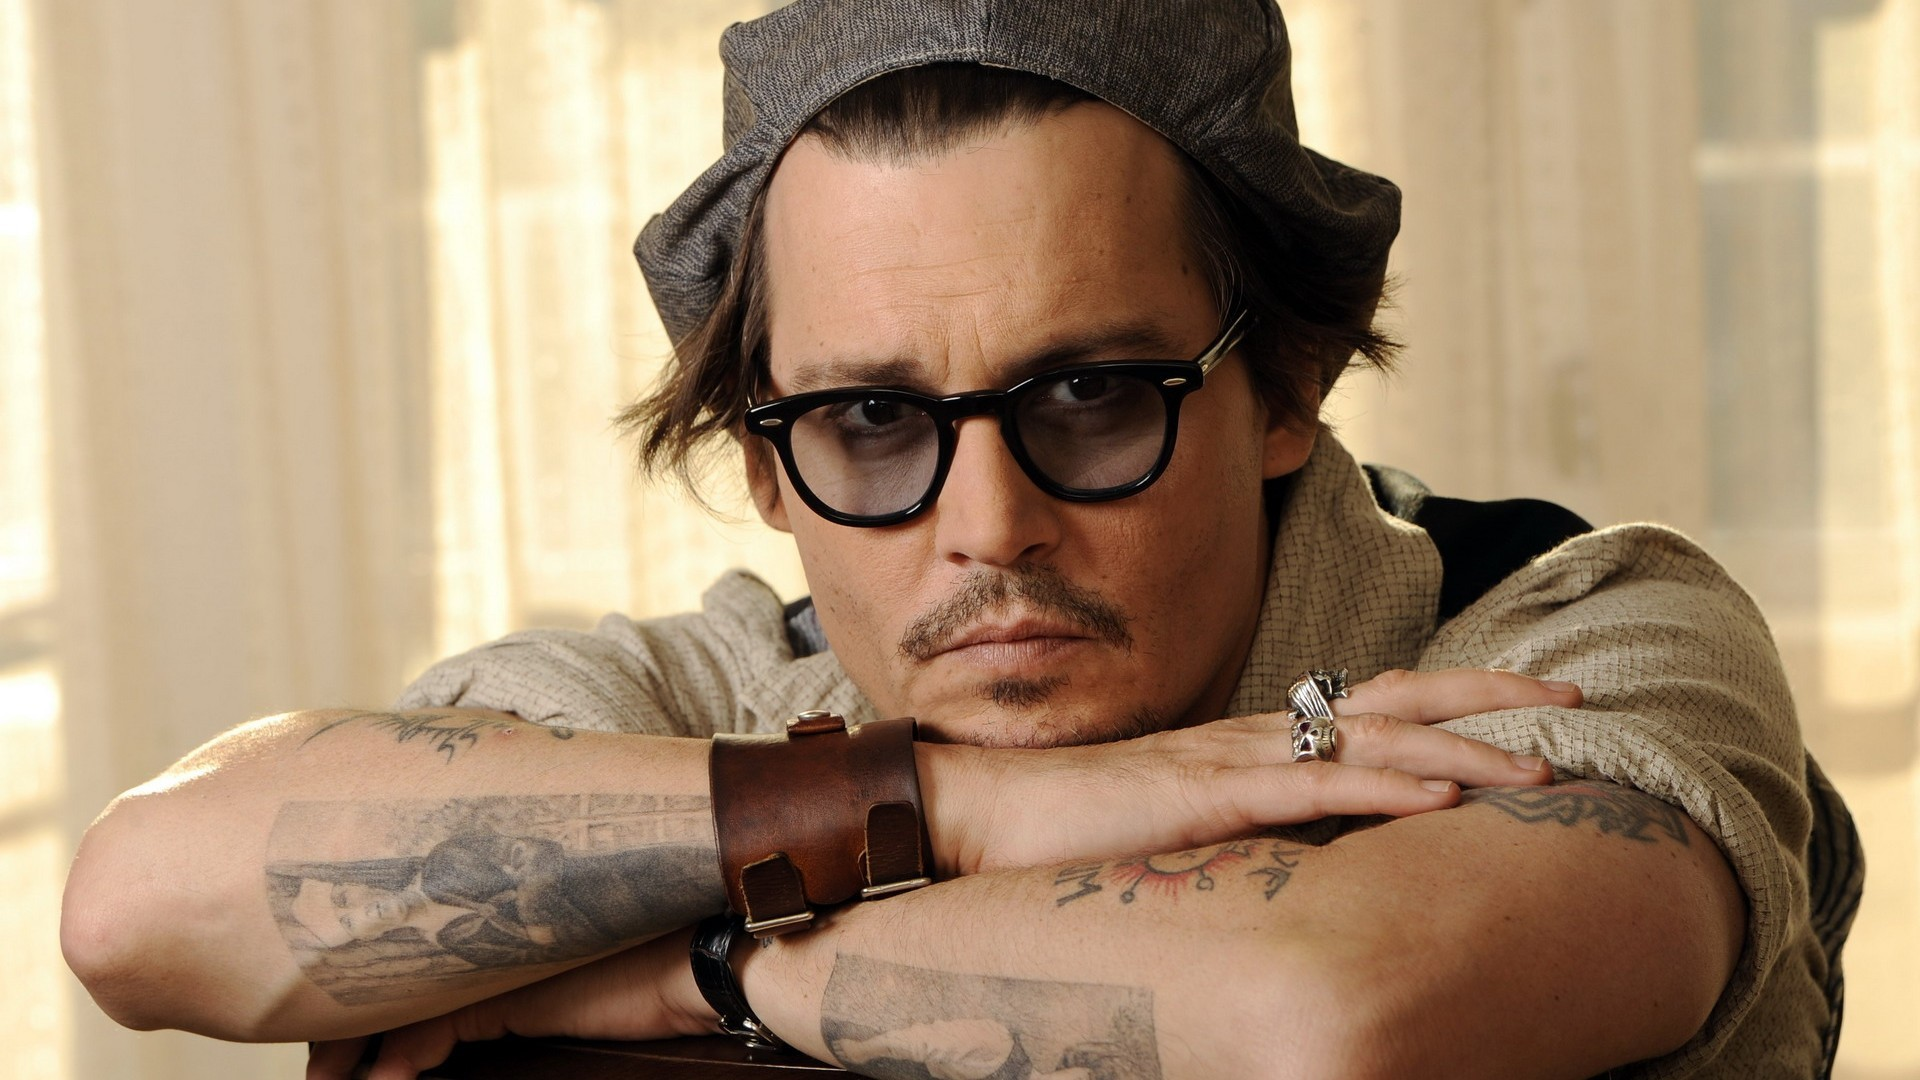 johnny depp cool.